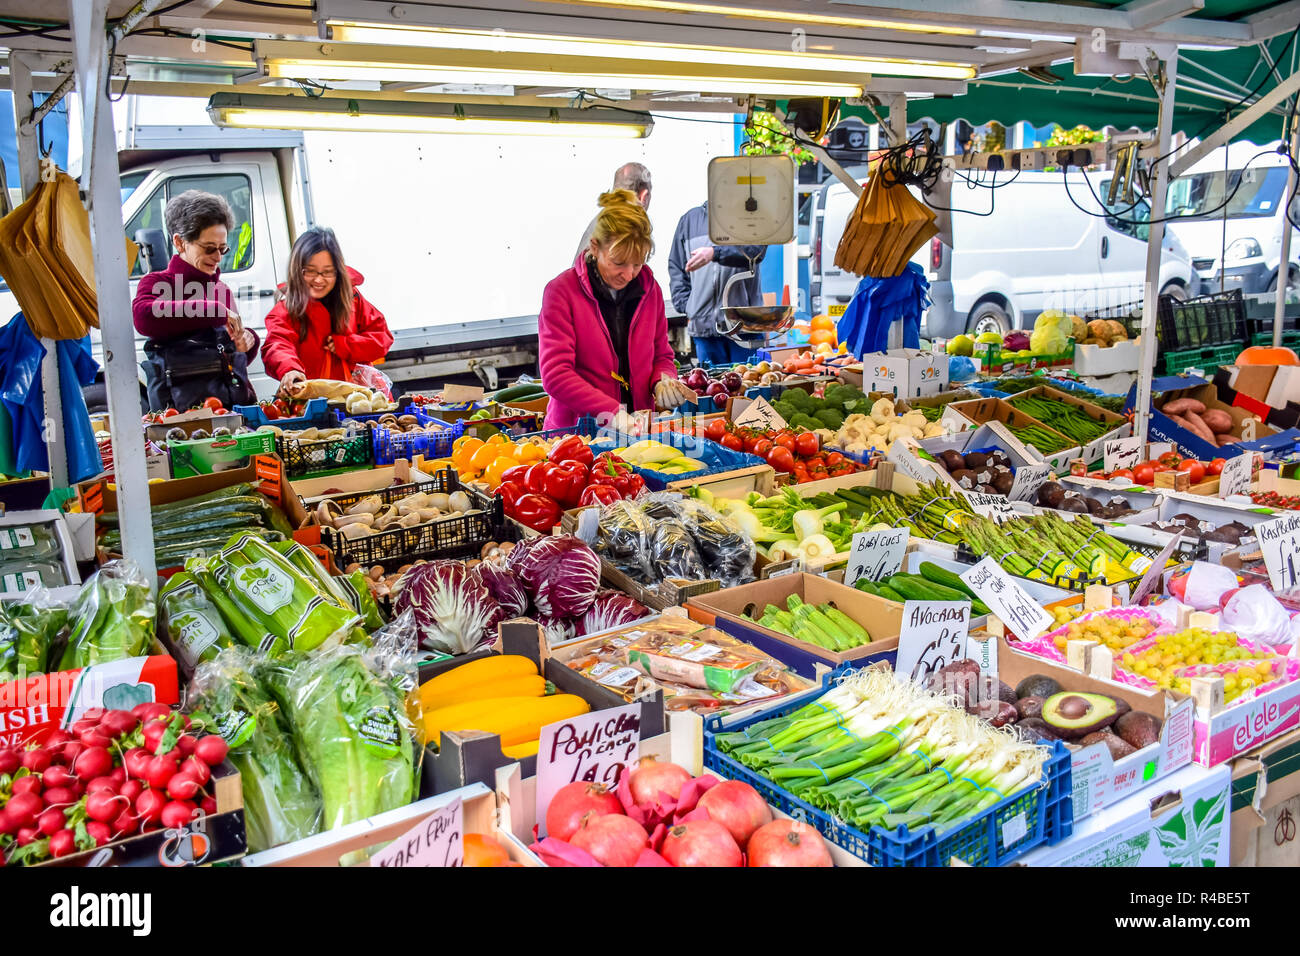 People buying fruits and vegetables at market stall in Portobello Road Market, Notting Hill, London, England, United Kingdom Stock Photo